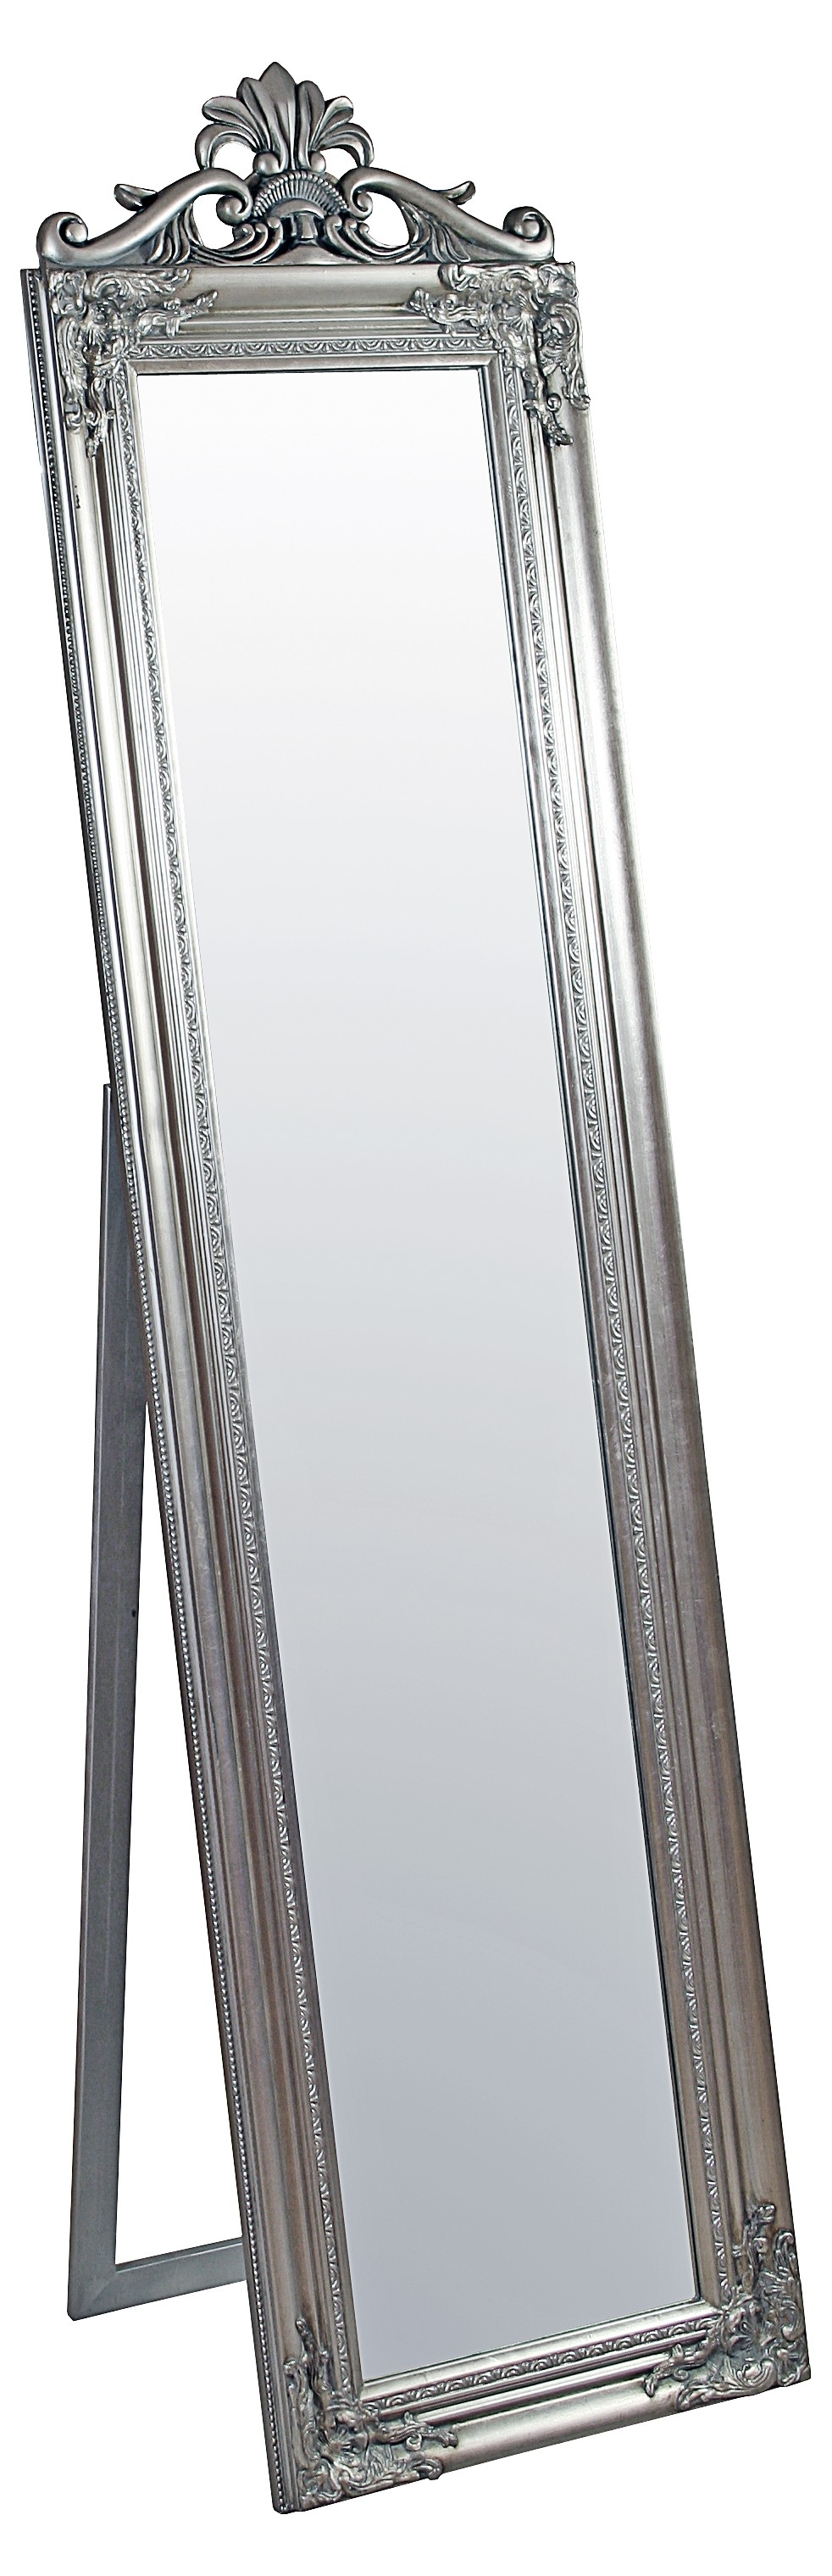 Floor Mirrors Full Length Floor Standing Decorative Be Fabulous In Silver Floor Standing Mirror (Image 9 of 15)